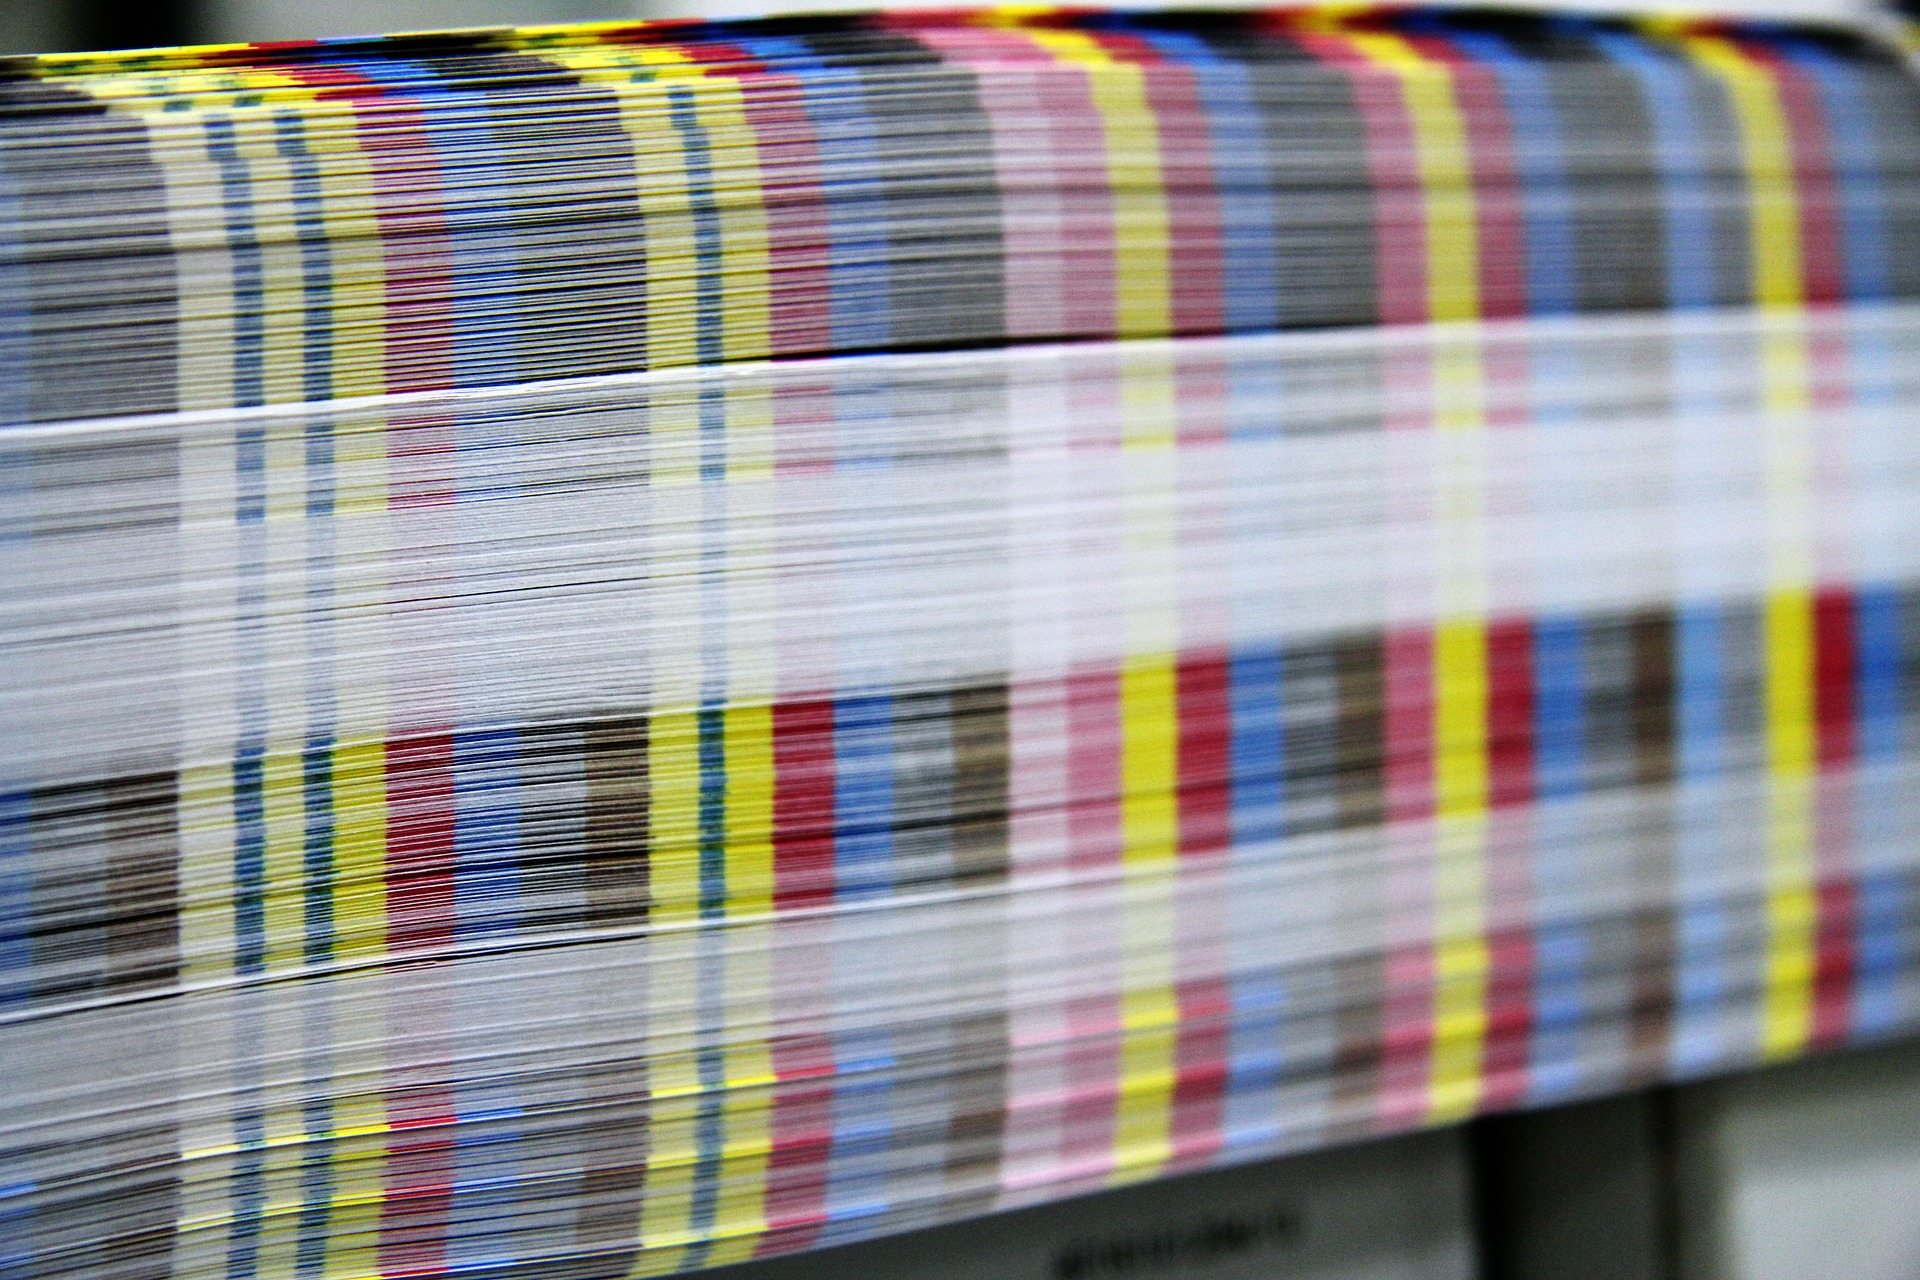 Color bars on offset printed sheets